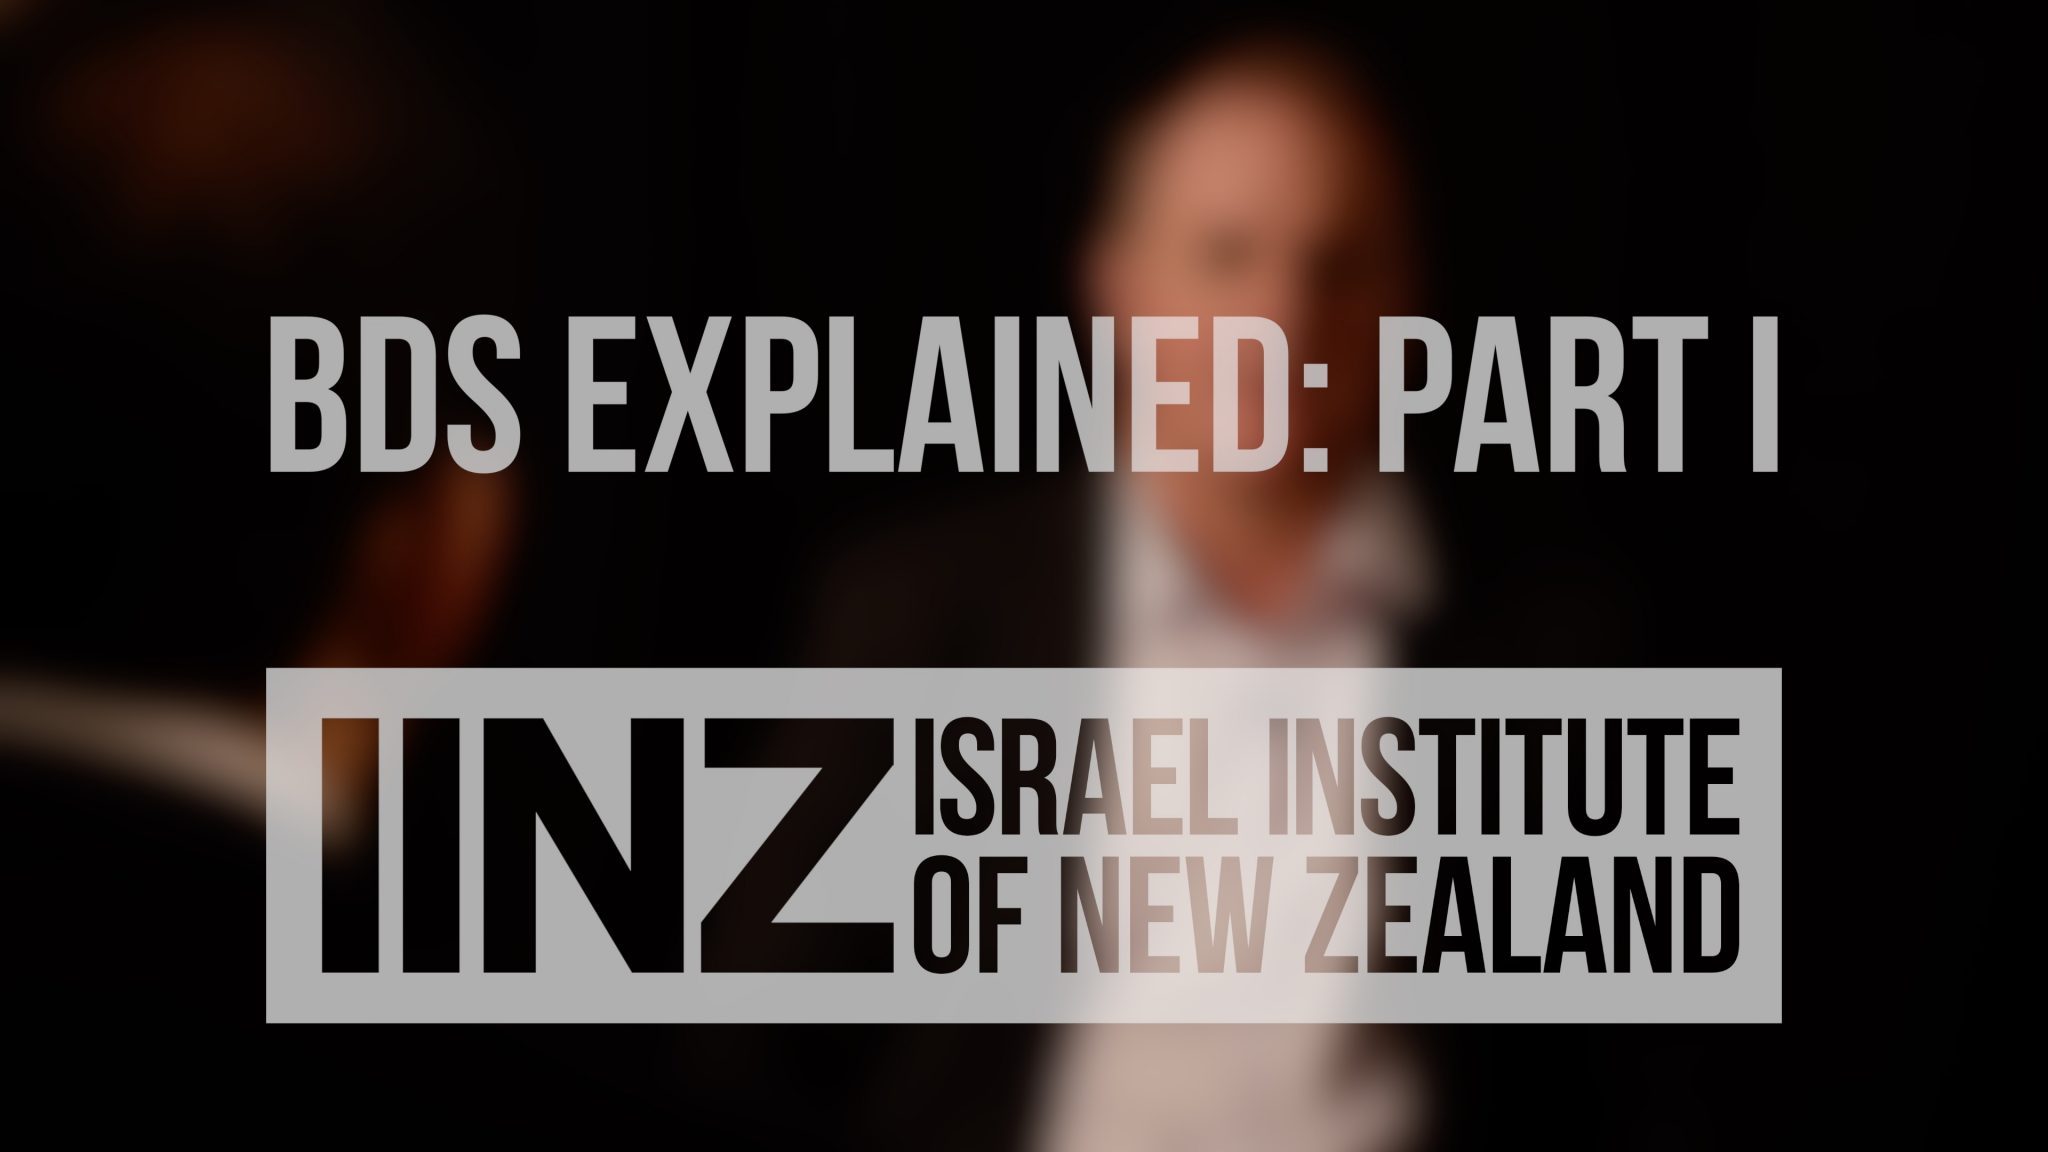 BDS Explained: Part I – The Israel Institute of New Zealand